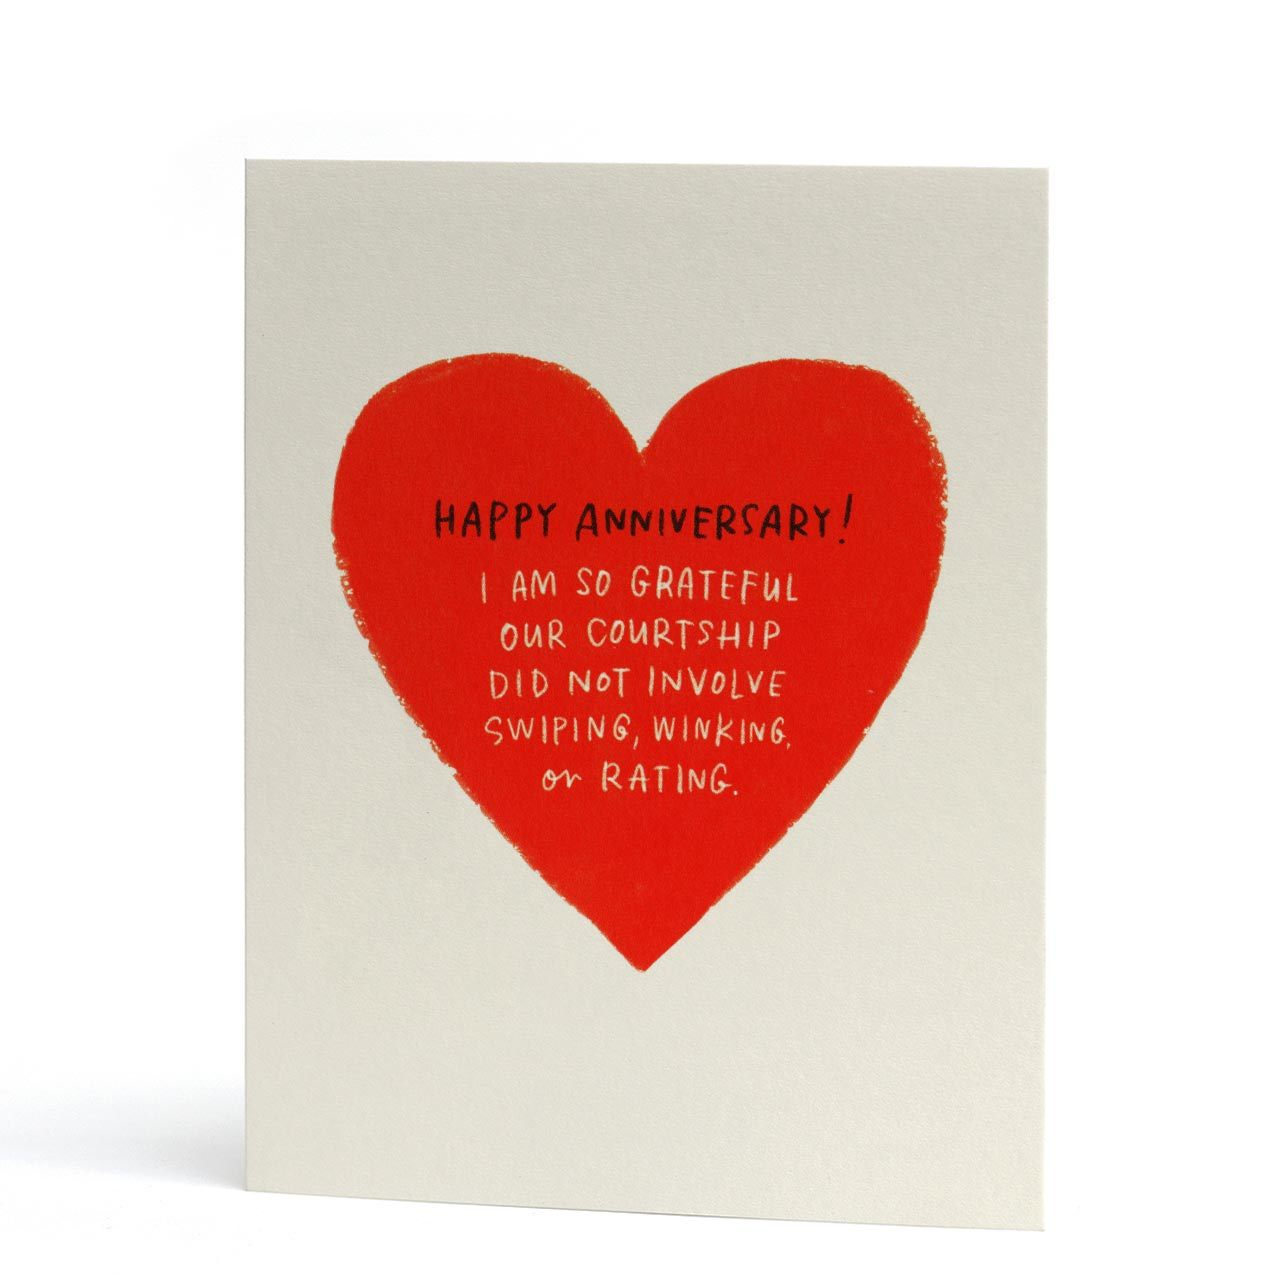 Swiping Winking Anniversary Greeting Card